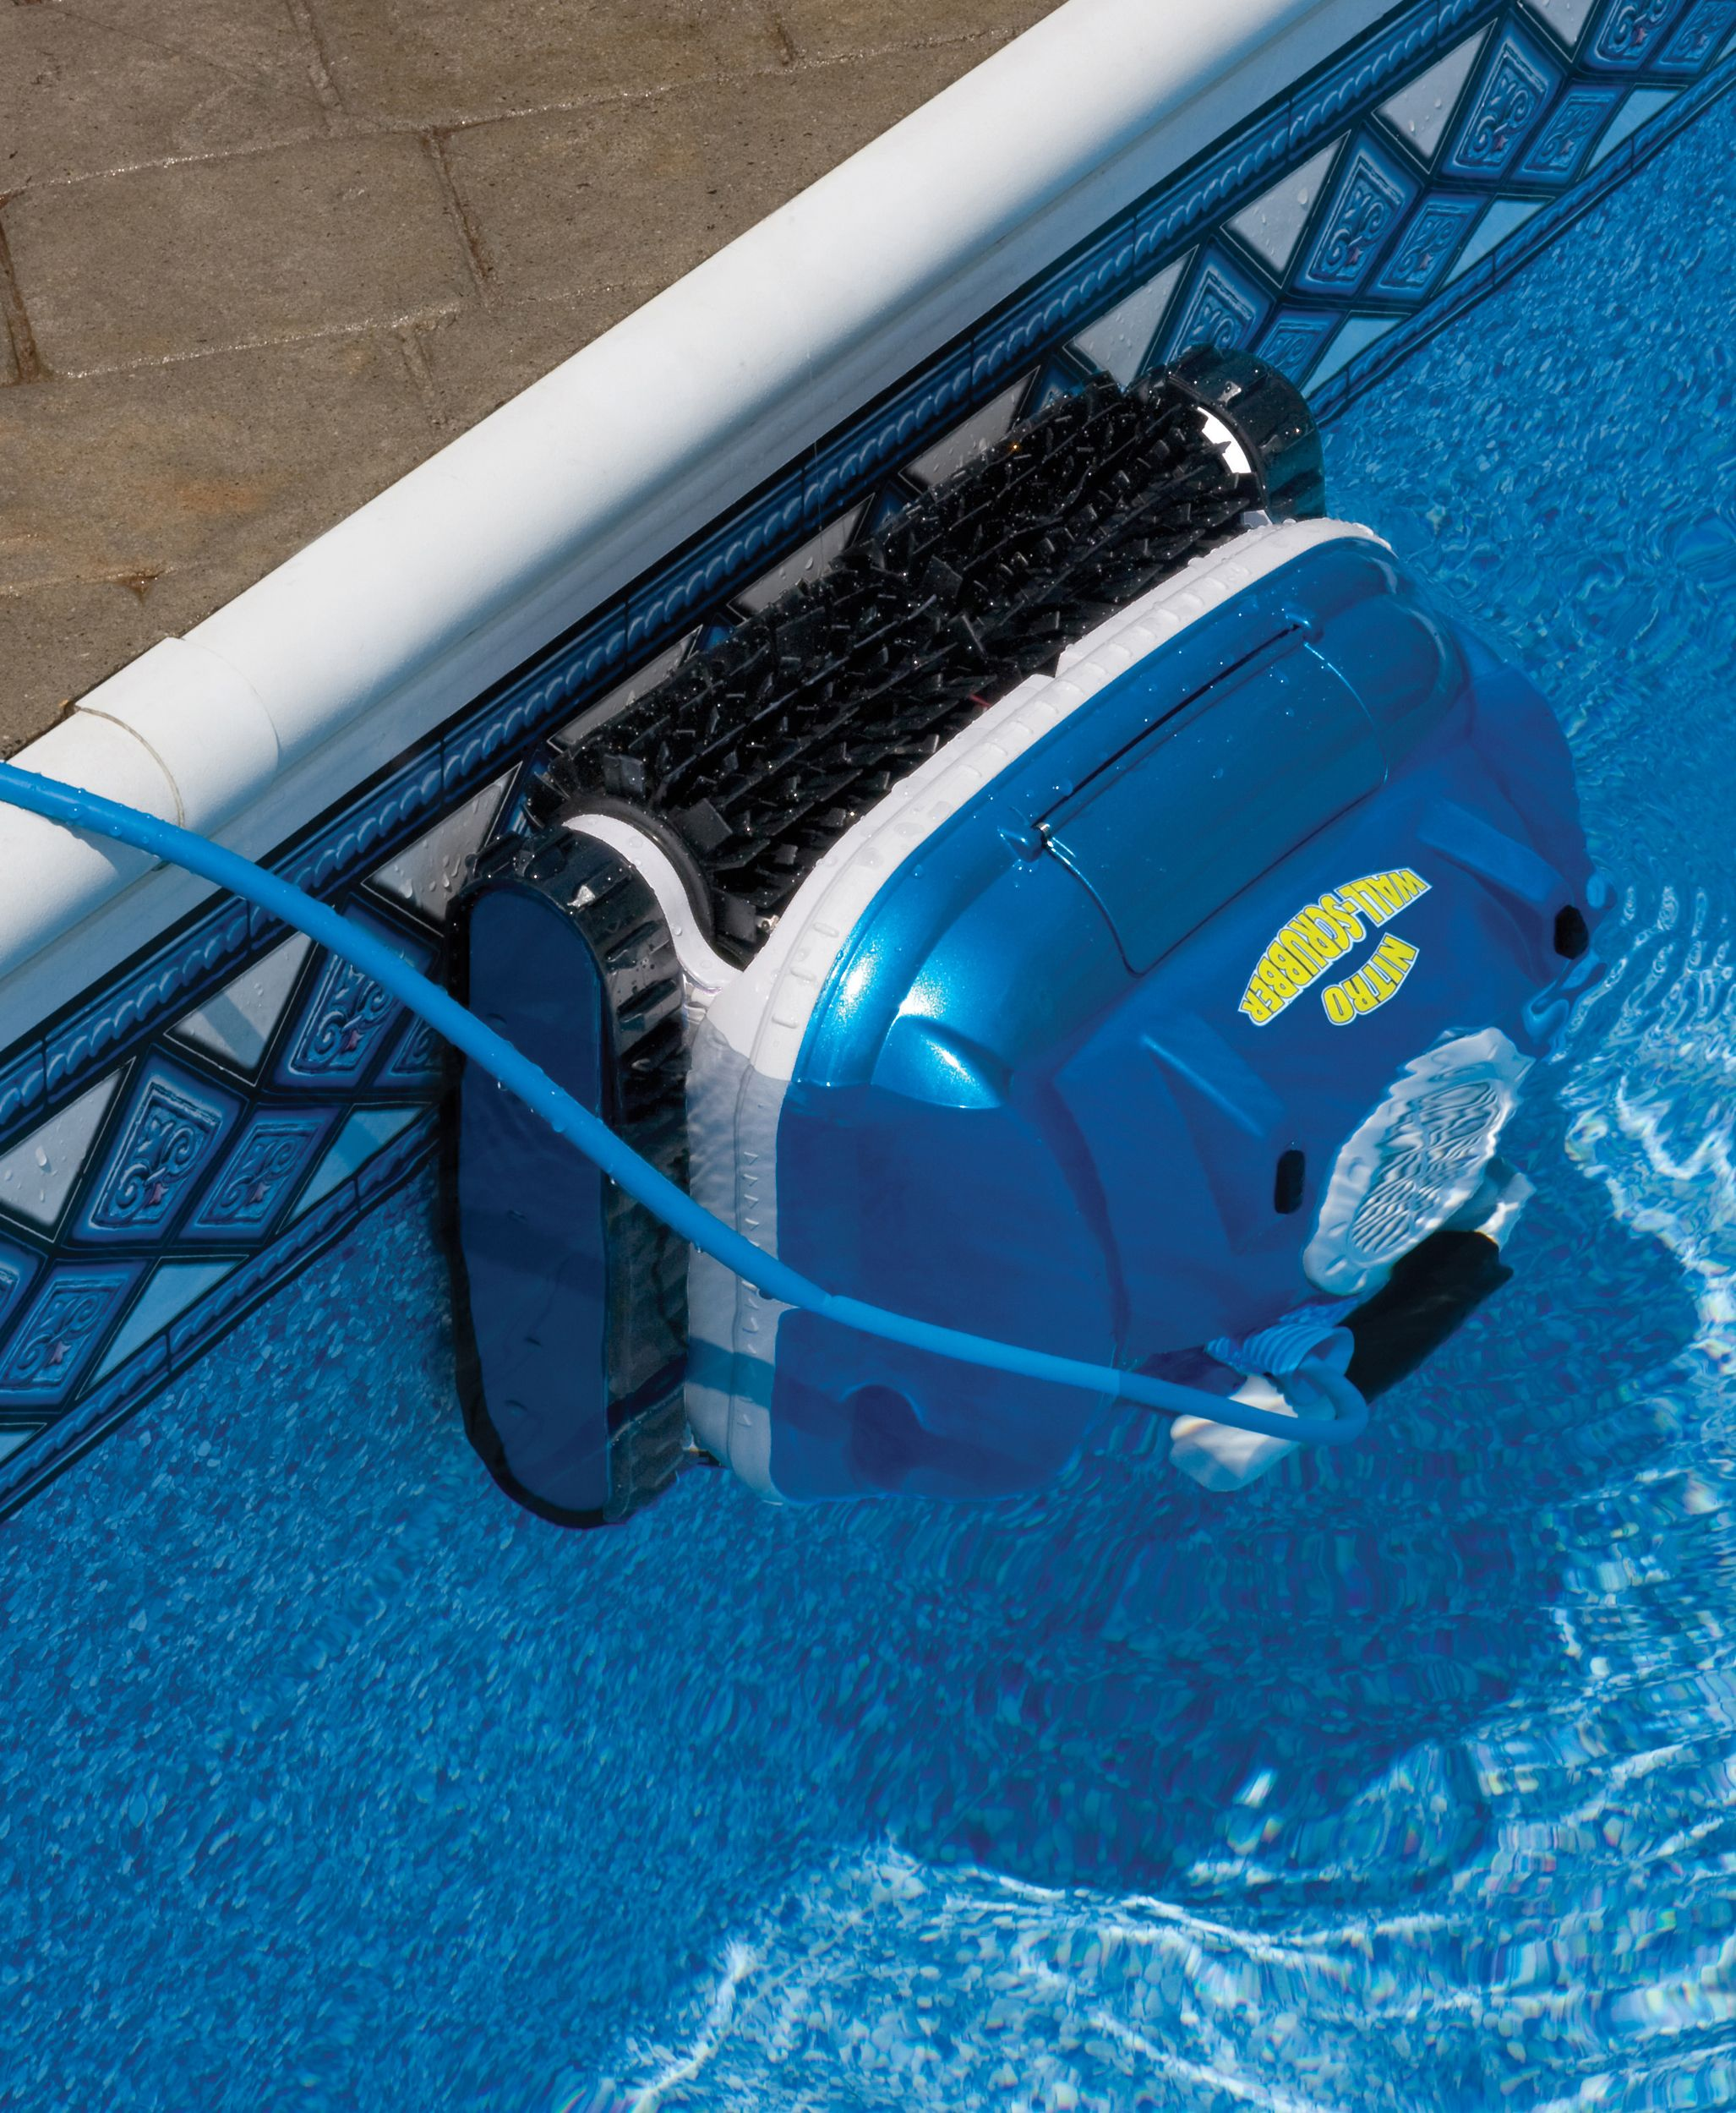 Find Out How To Clear Up That Swampy Green Pool In Your Pool Cleaning Best Robotic Pool Cleaner Robotic Pool Cleaner